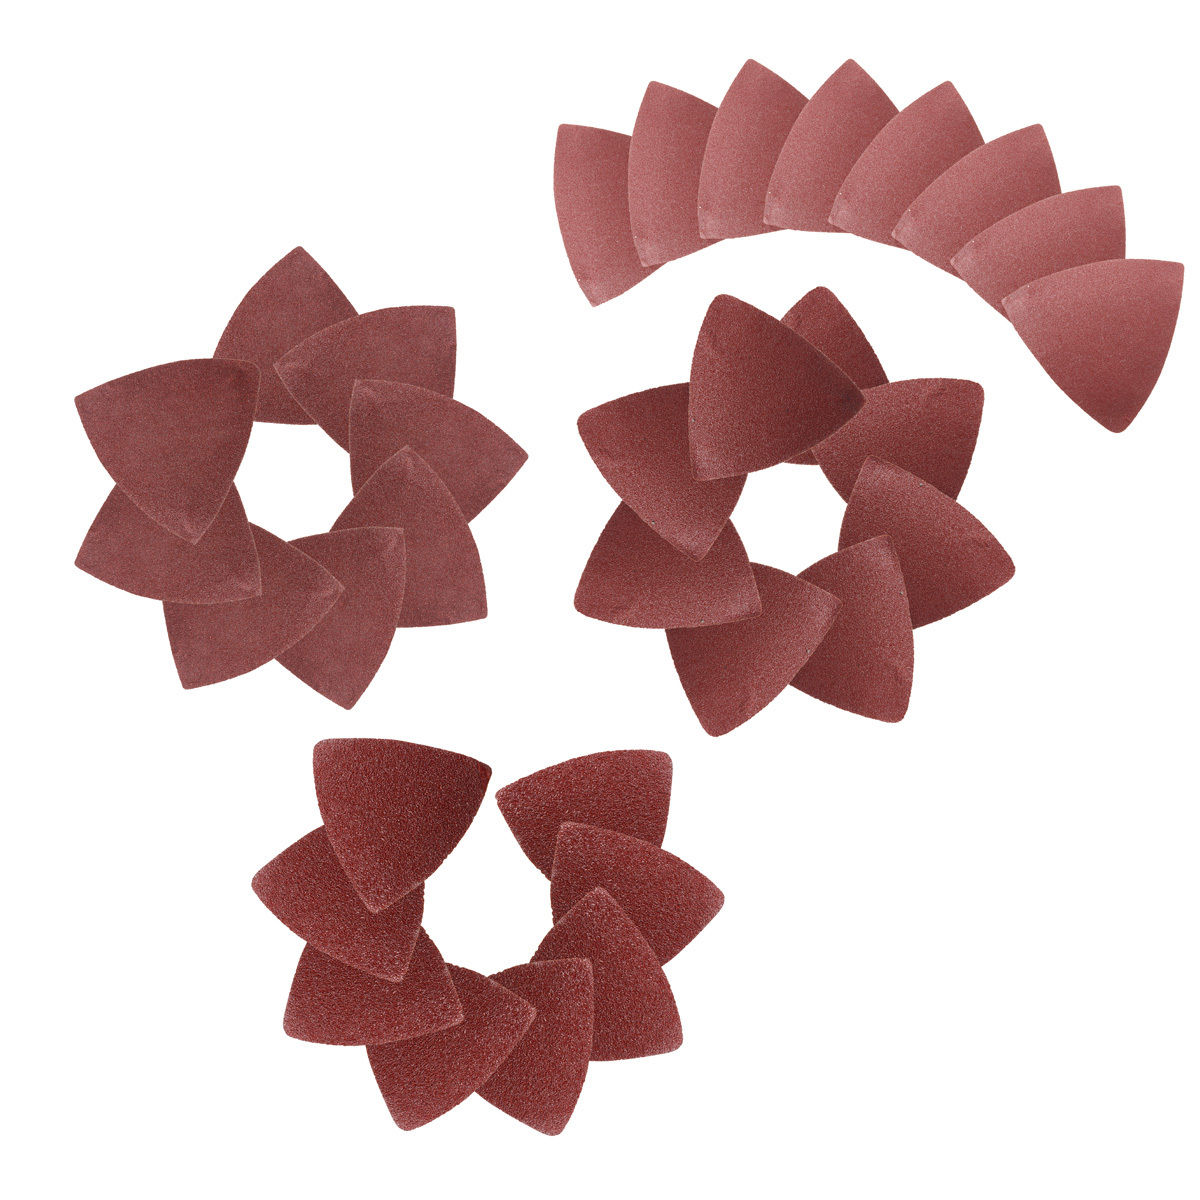 32Pcs 60/80/120/240 Red Grit Sanding Sheet Discs Triangle Grinder Sandpaper Pad 80mm Oscillating Abrasive Polishing Tool